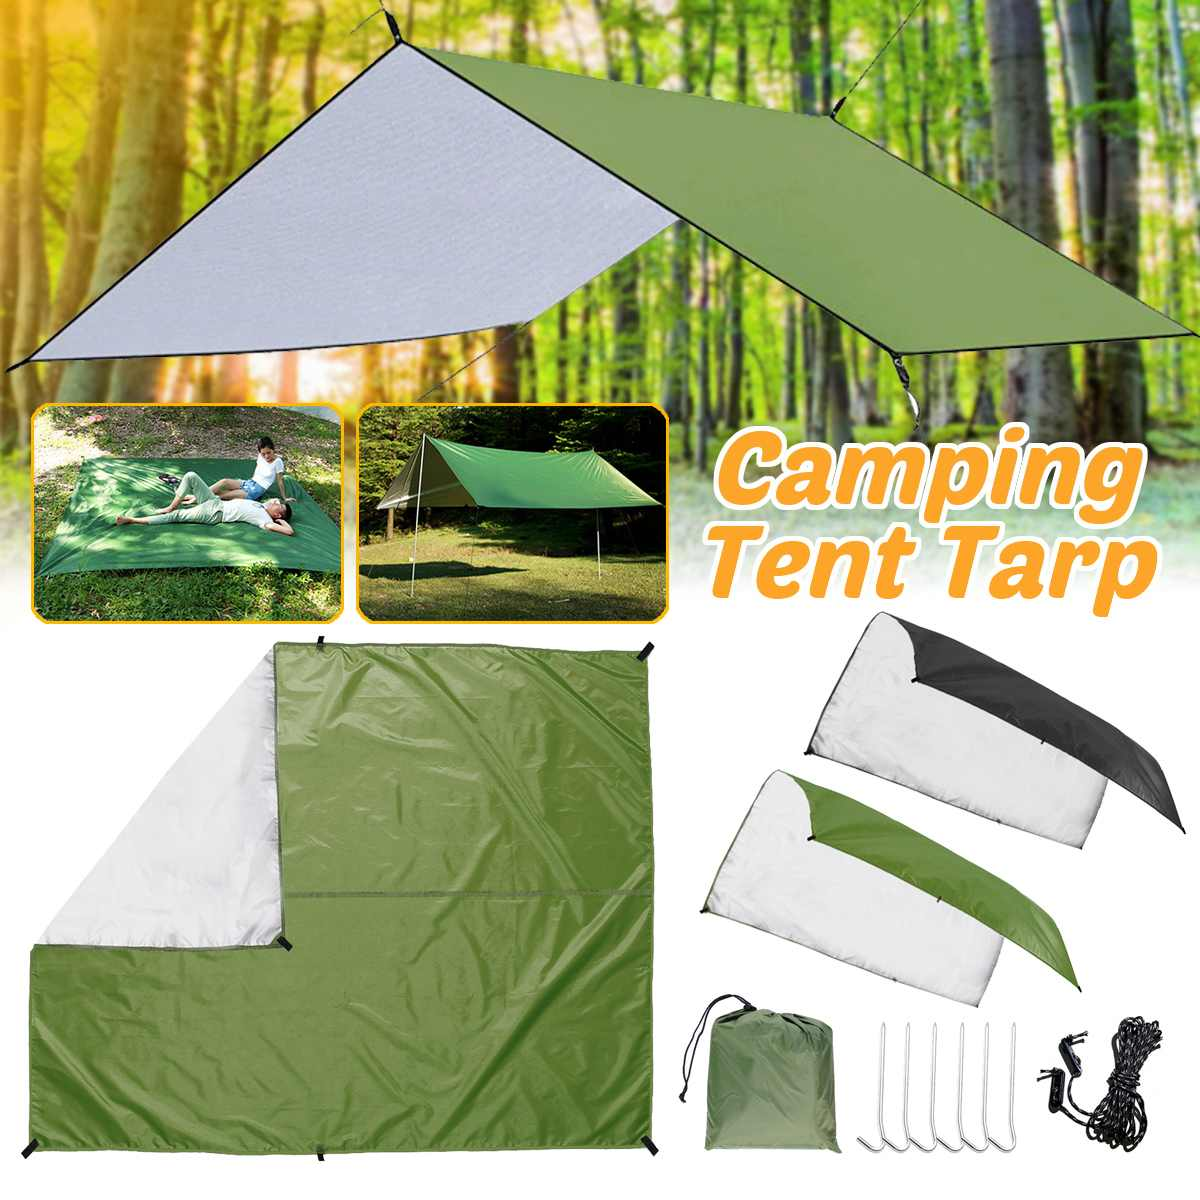 Camping Hammock Rain Fly Tent Tarp 3x3m Waterproof Portable Shelter for Outdoor